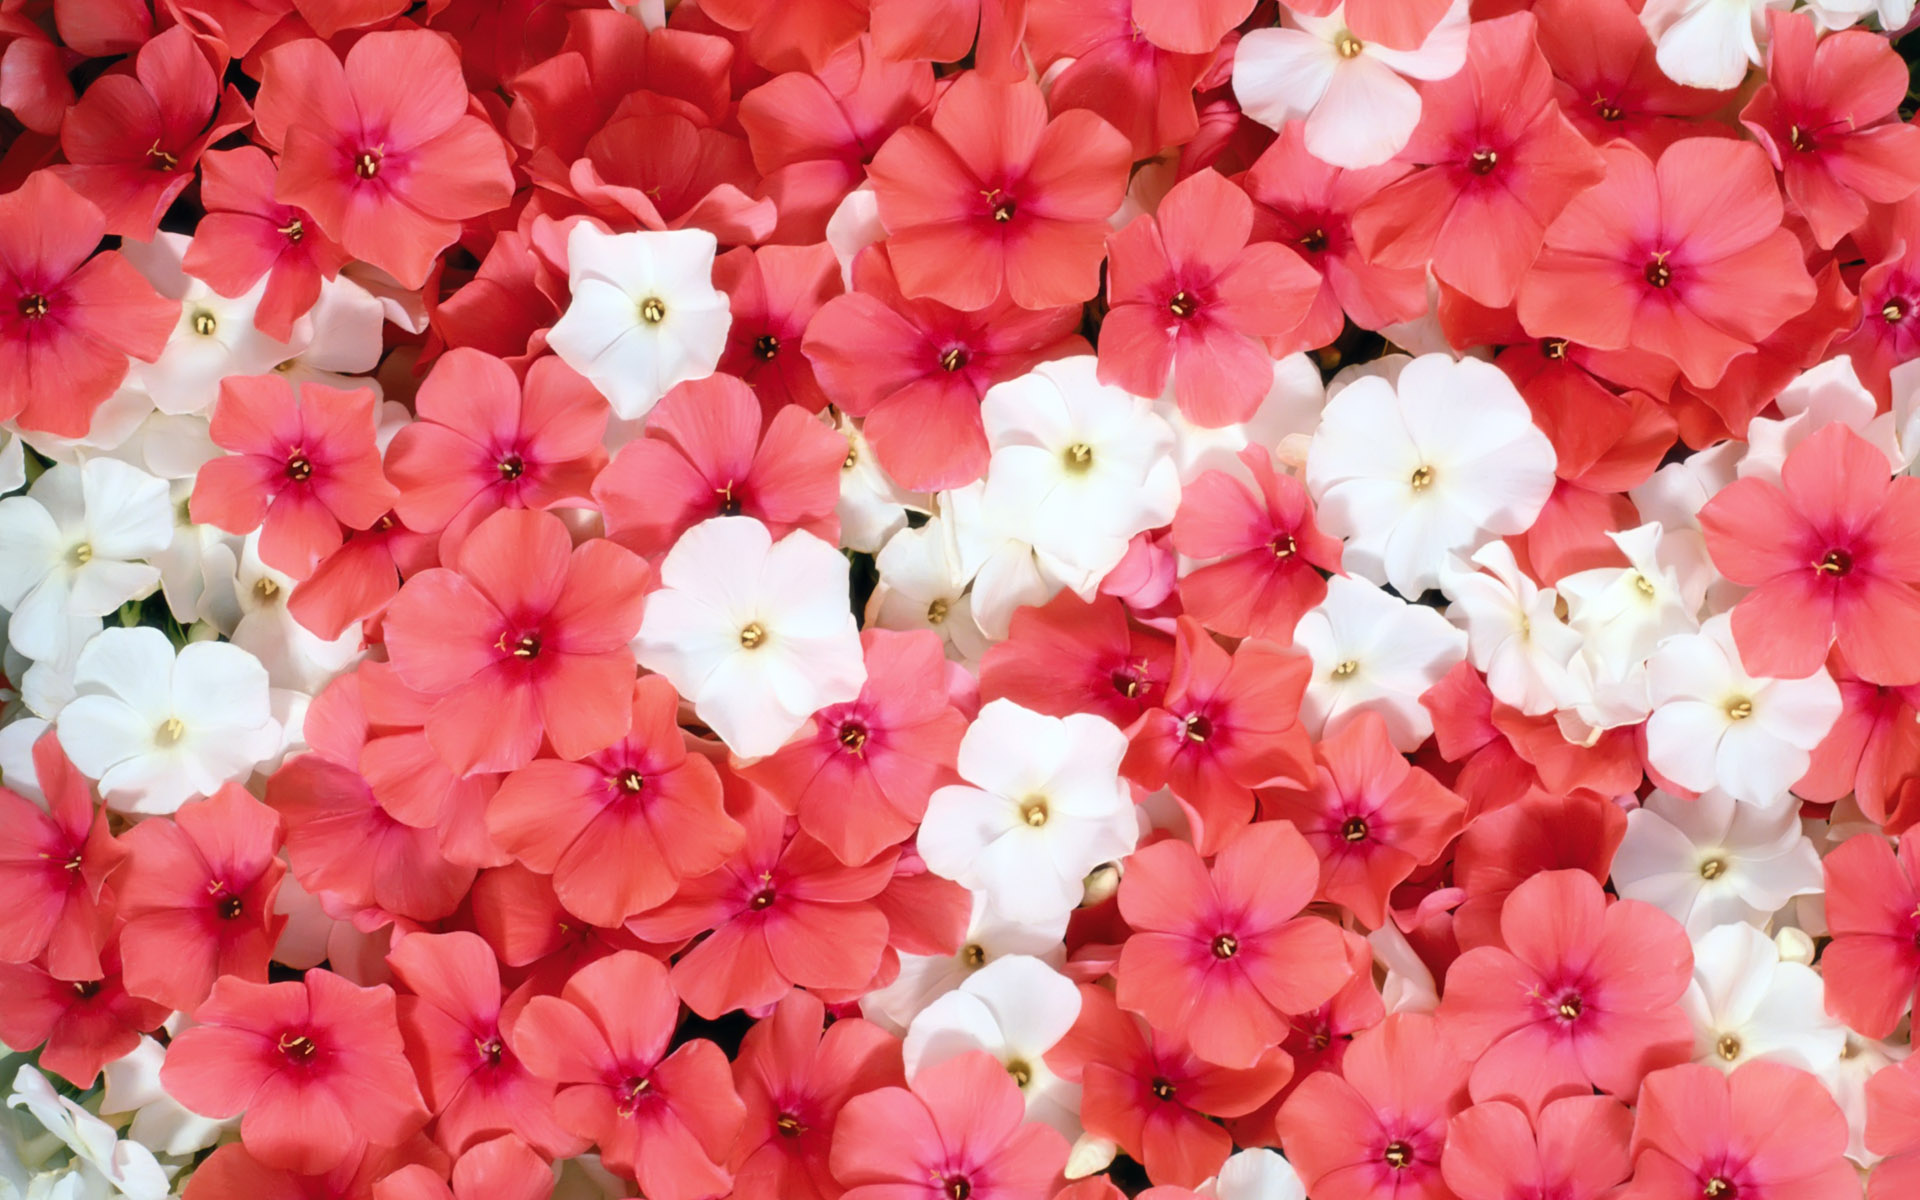 pink and white phlox flowers full hd wallpaper and background image